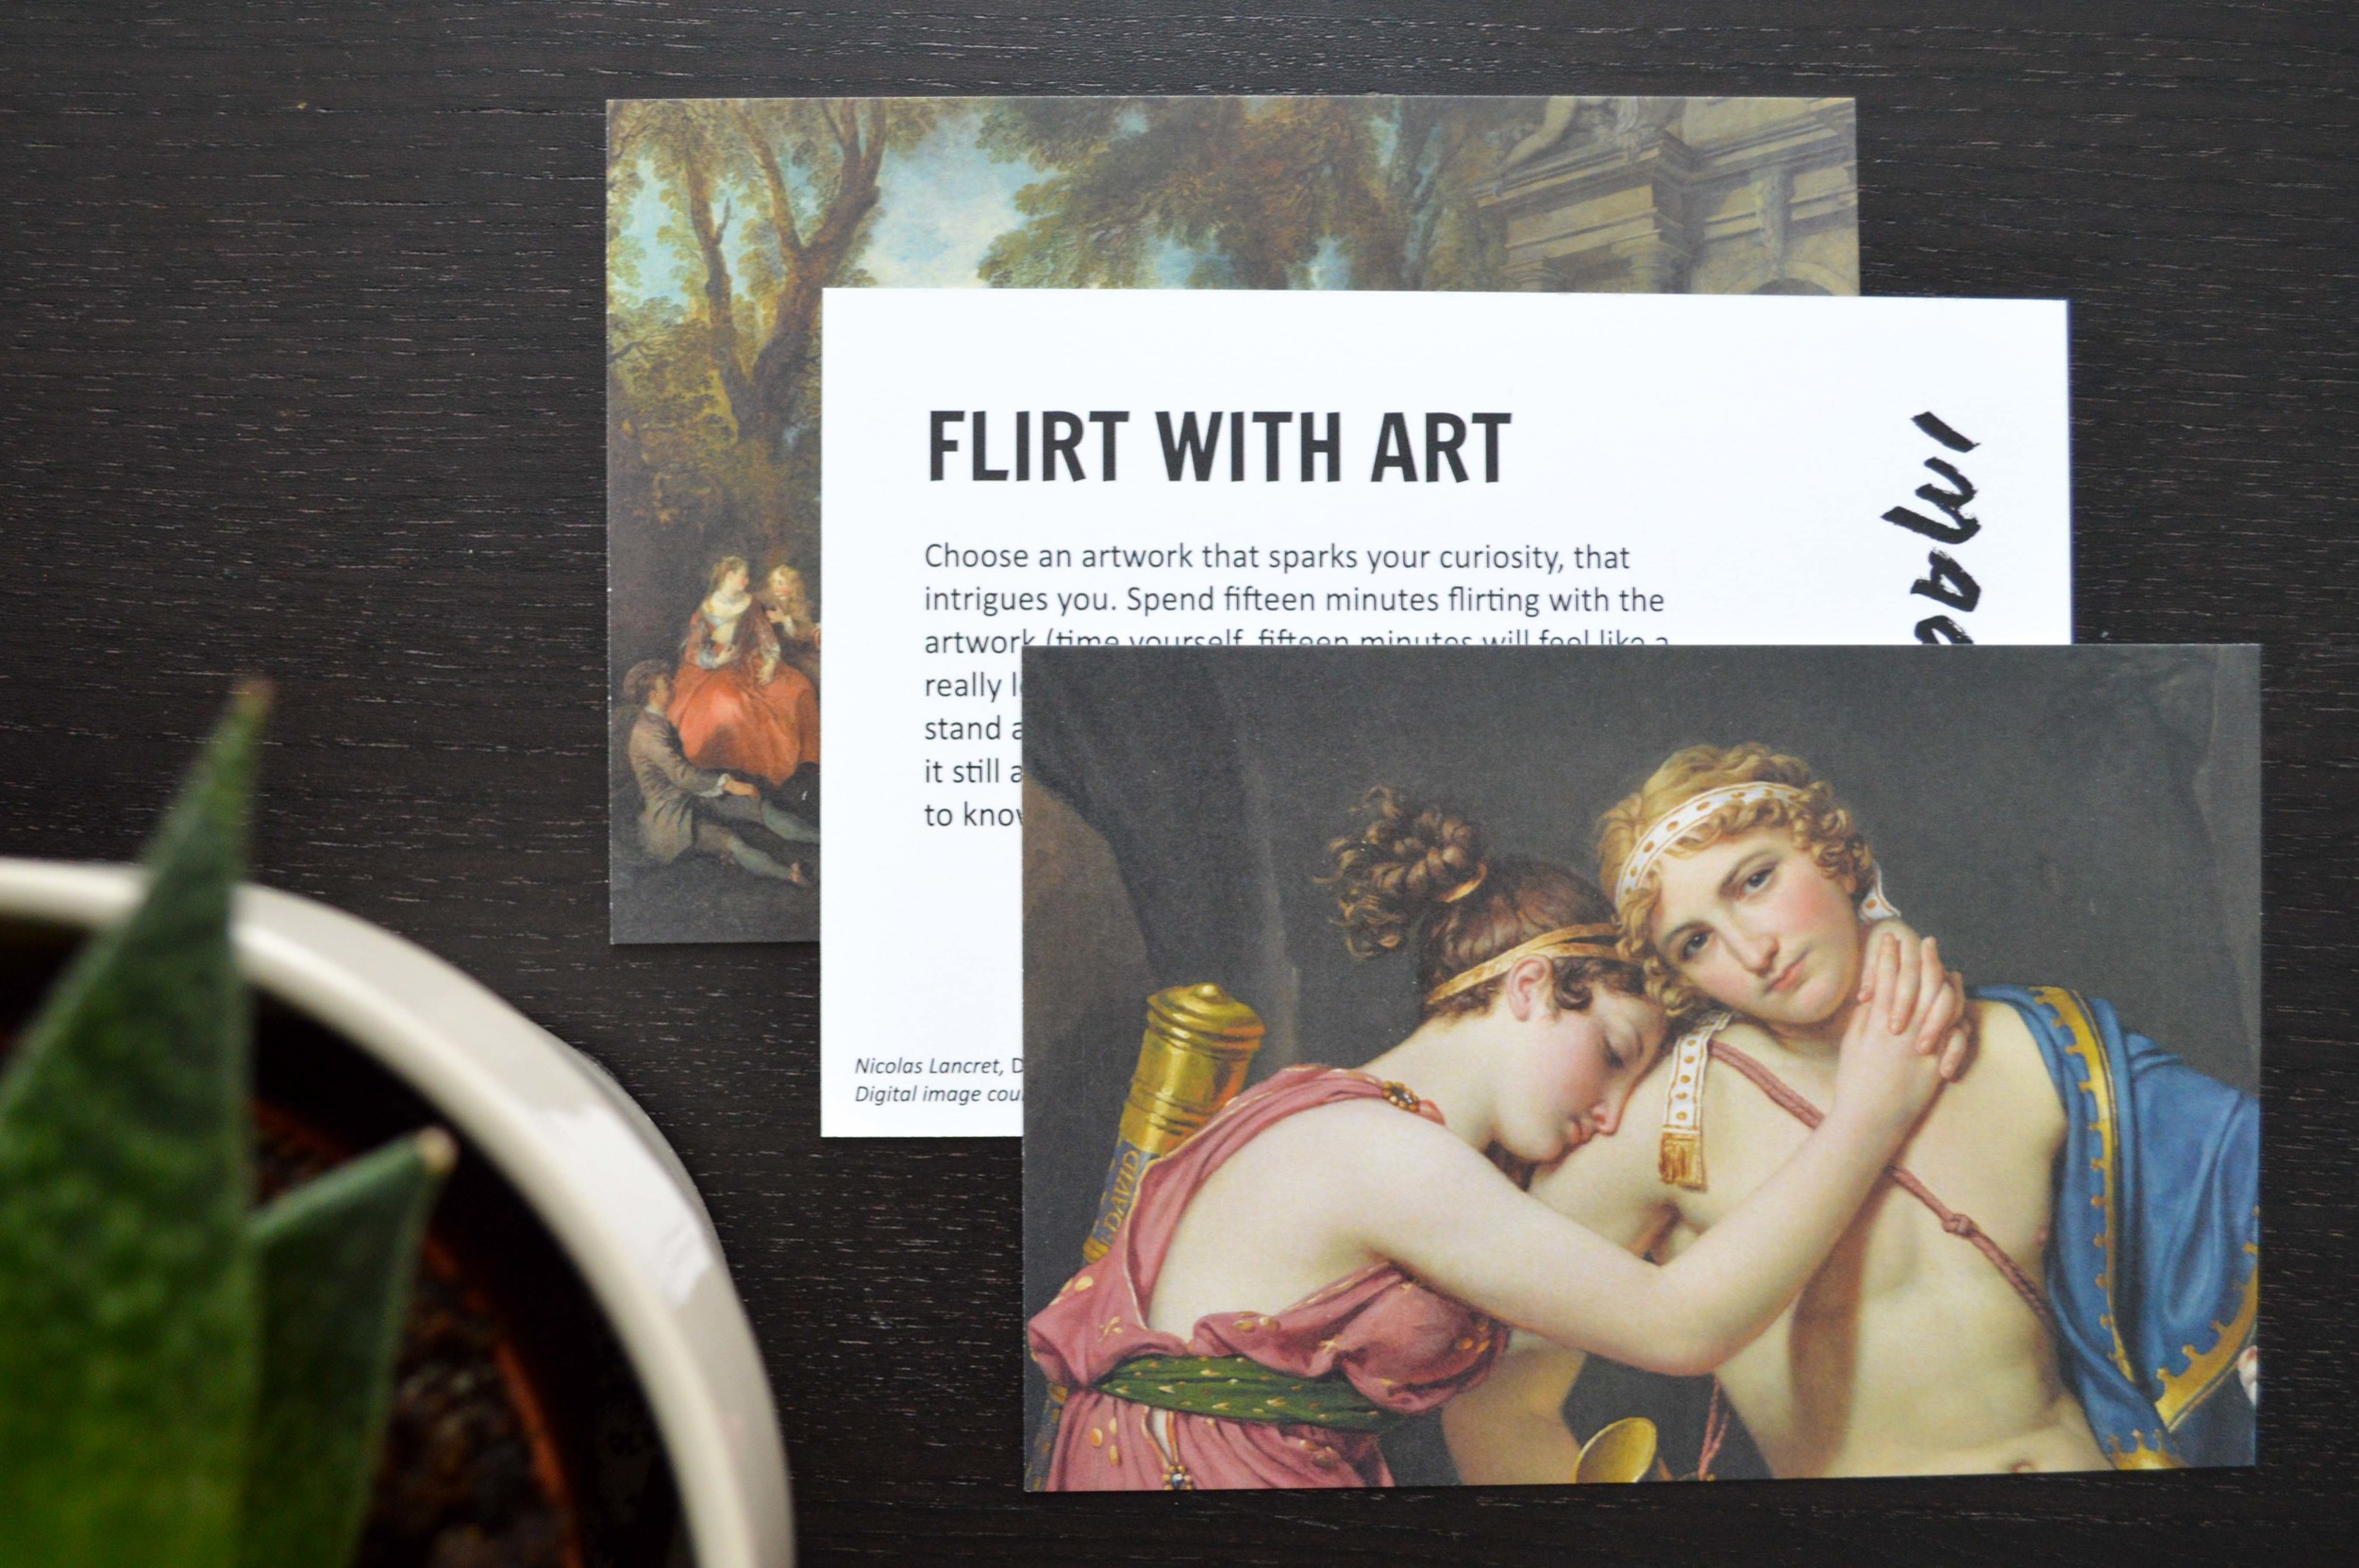 Digital image on the card courtesy of the Getty's Open Content Program.